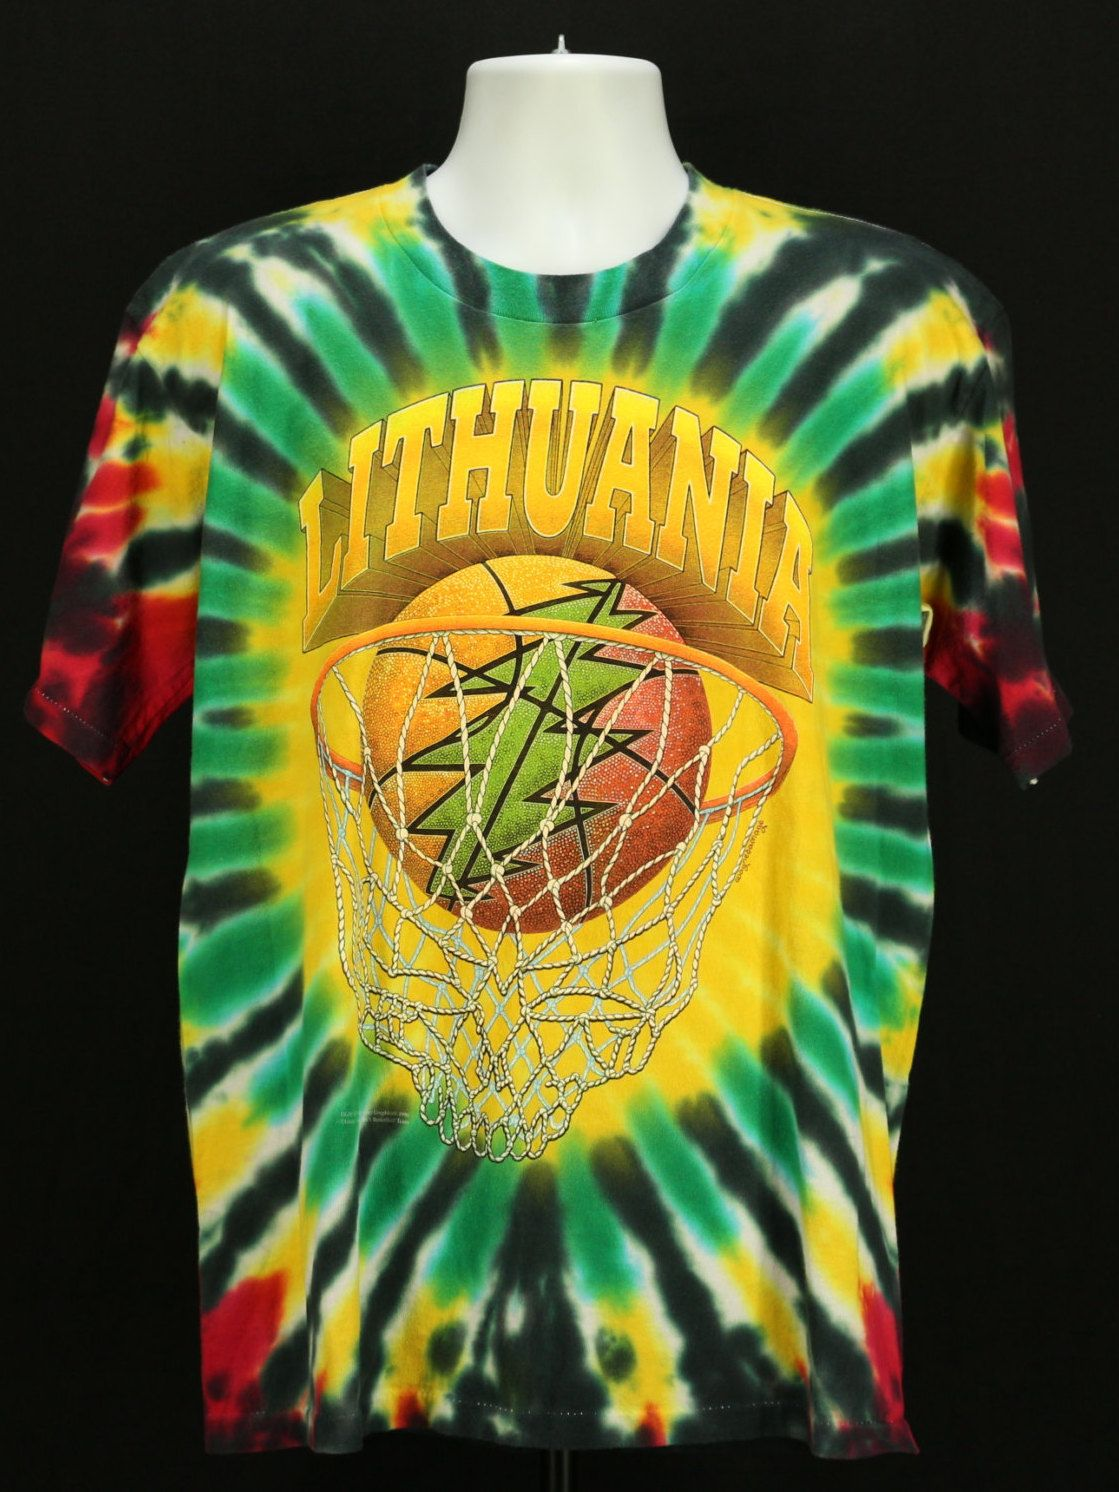 e4dd5ef8c Vintage 90s GRATEFUL DEAD Lithuania Tye Dye Tour T-Shirt LG Basketball  Olympics by JeepsterVintage on Etsy